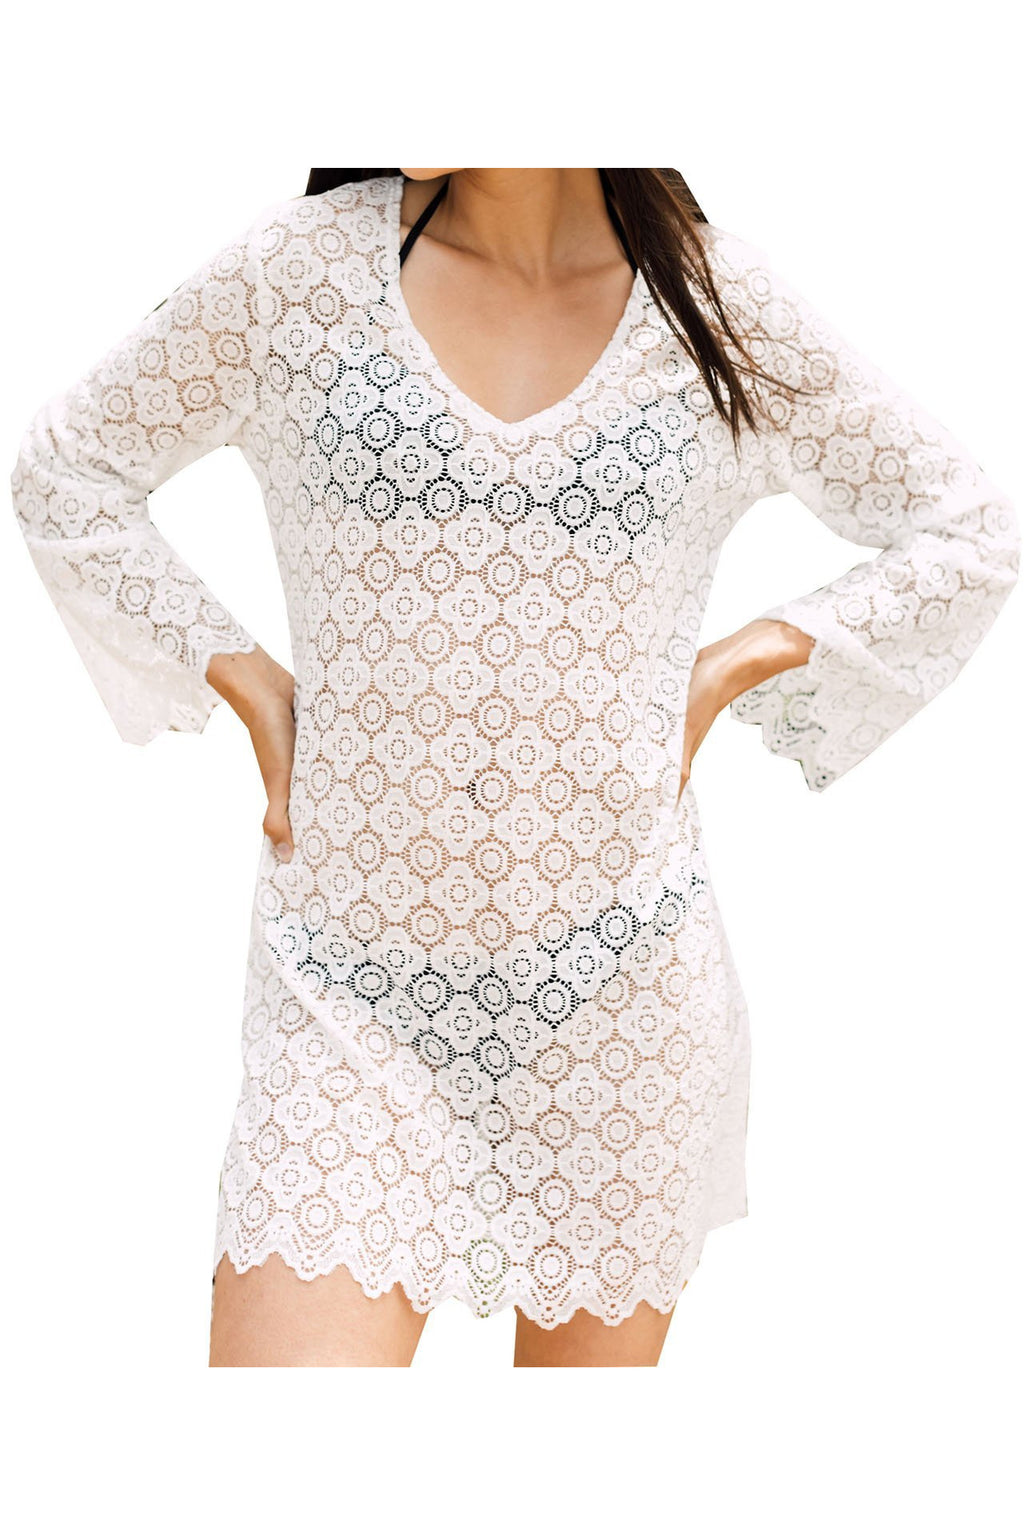 J Valdi Croatia Bell Sleeve Tunic Cover Up - White